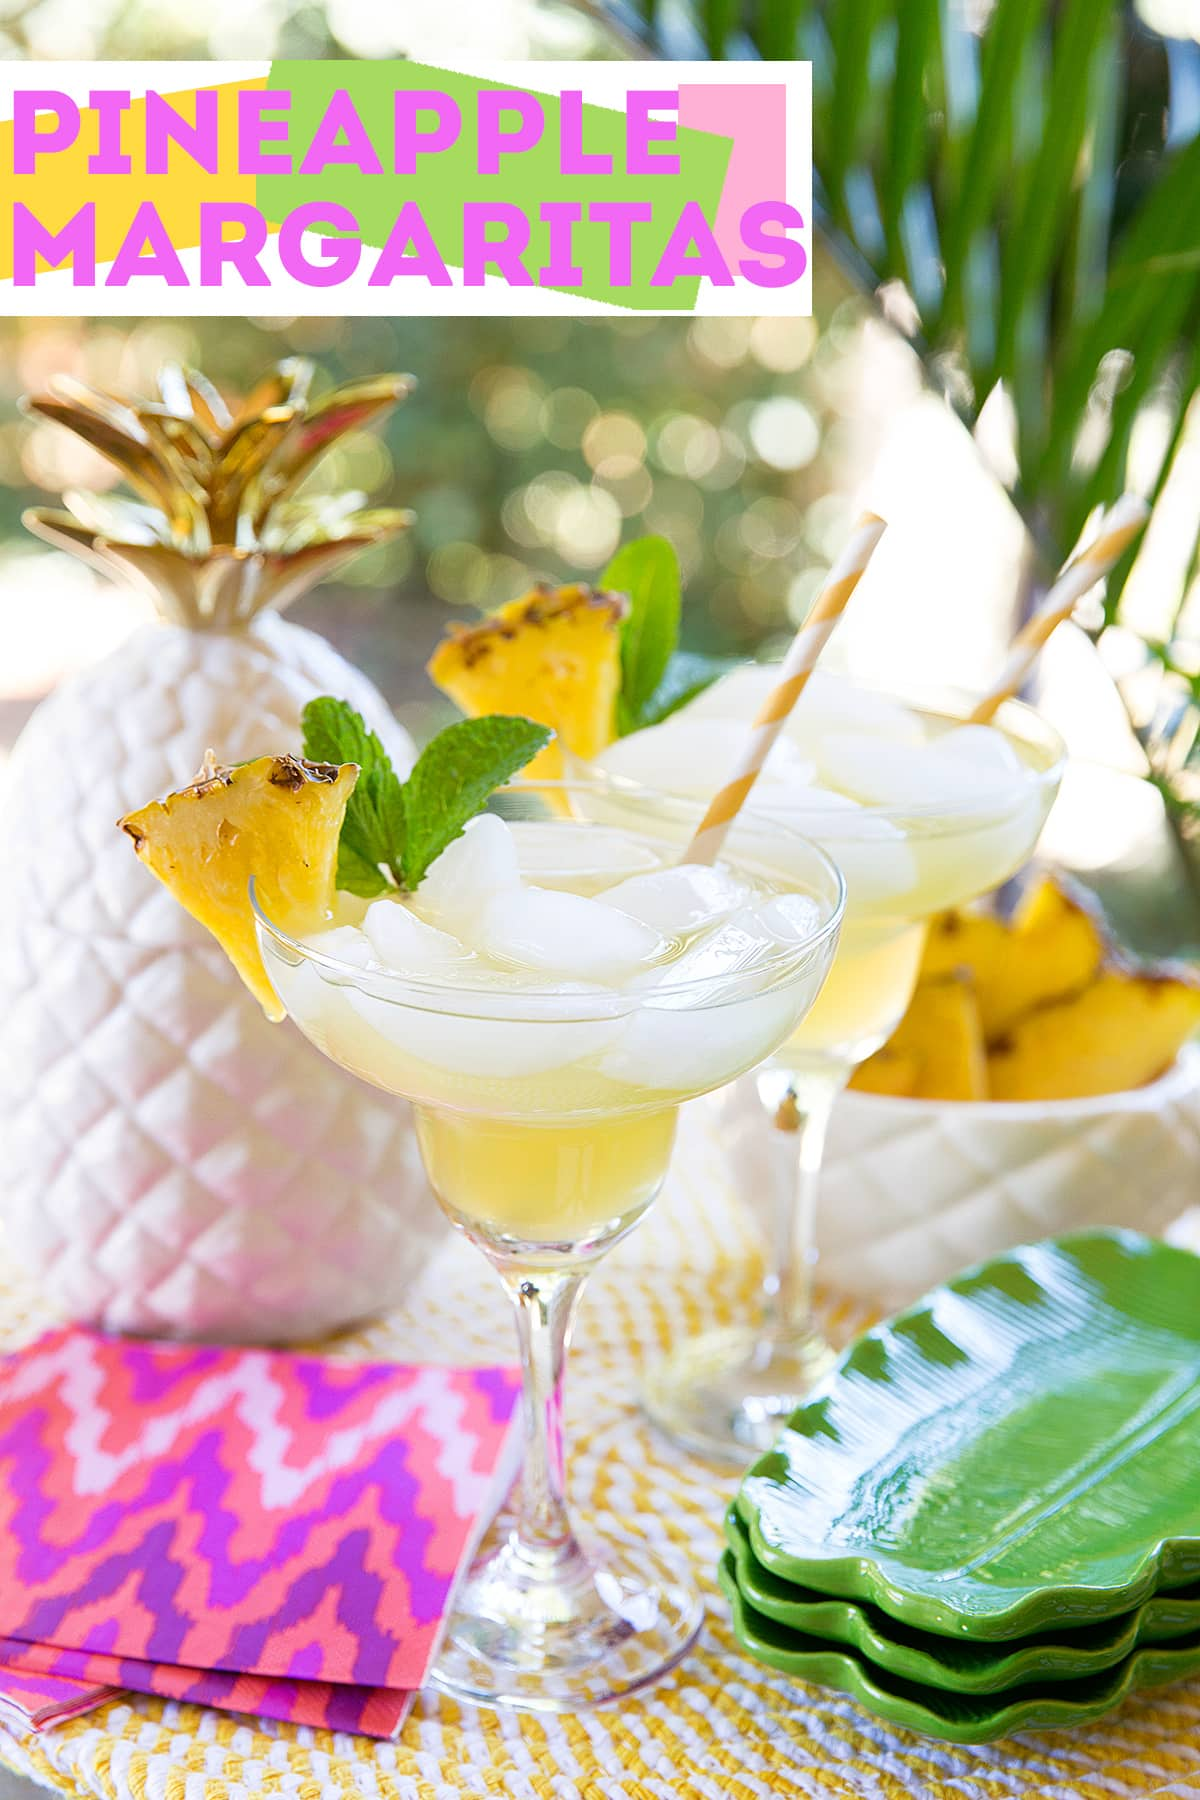 Pineapple Margarita!